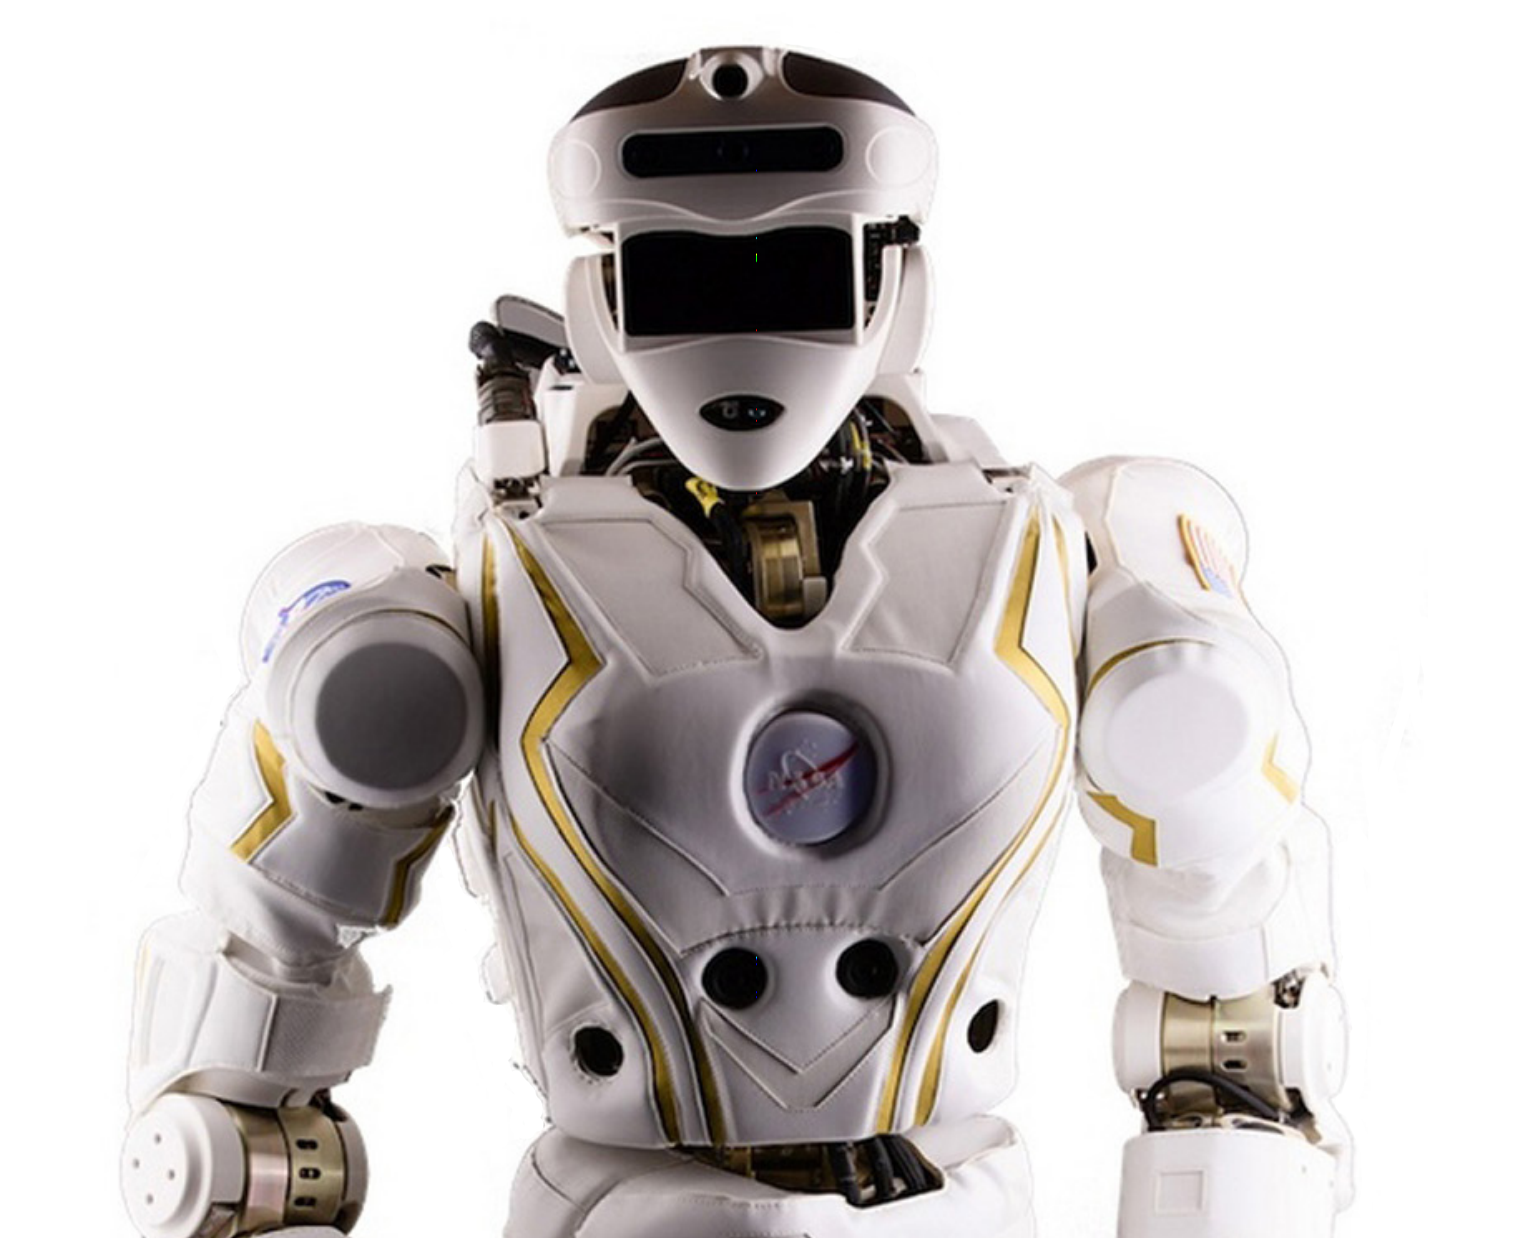 NASA is sending two humanoid robots to college - CBS News